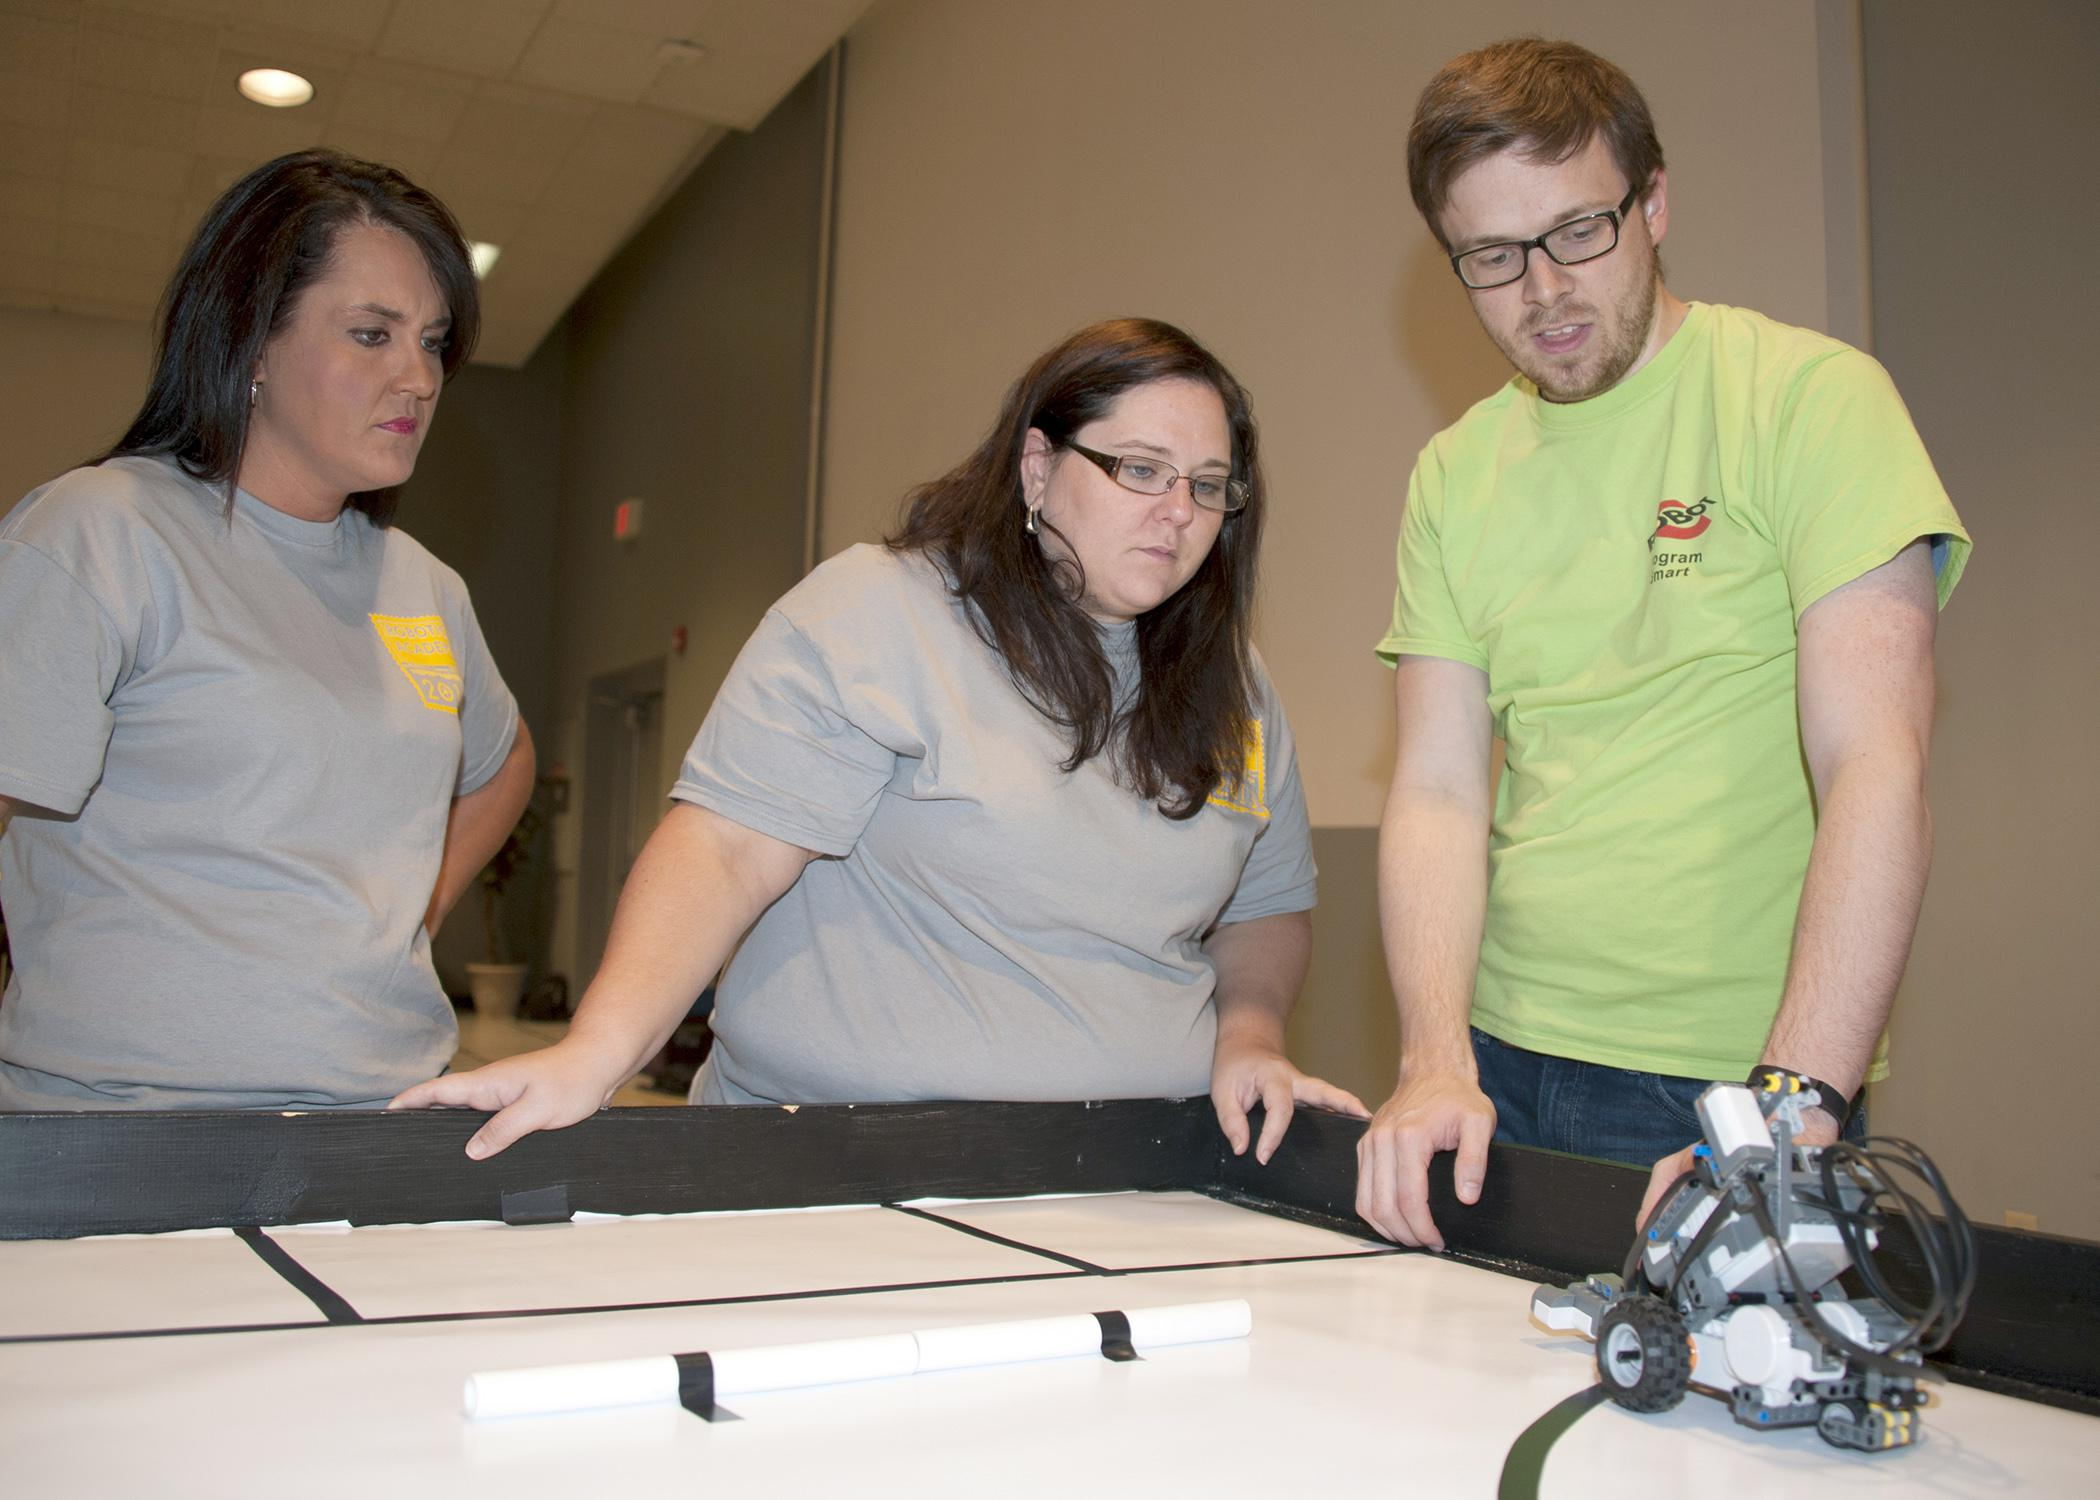 Betsy Padgett, Holmes County Extension agent, and Christina Meriwether, Leflore County Extension agent, learn how to program robots at Mississippi State University's 4-H Robotics Academy on Aug. 13, 2013. (Photo by MSU Ag Communications/Kat Lawrence)